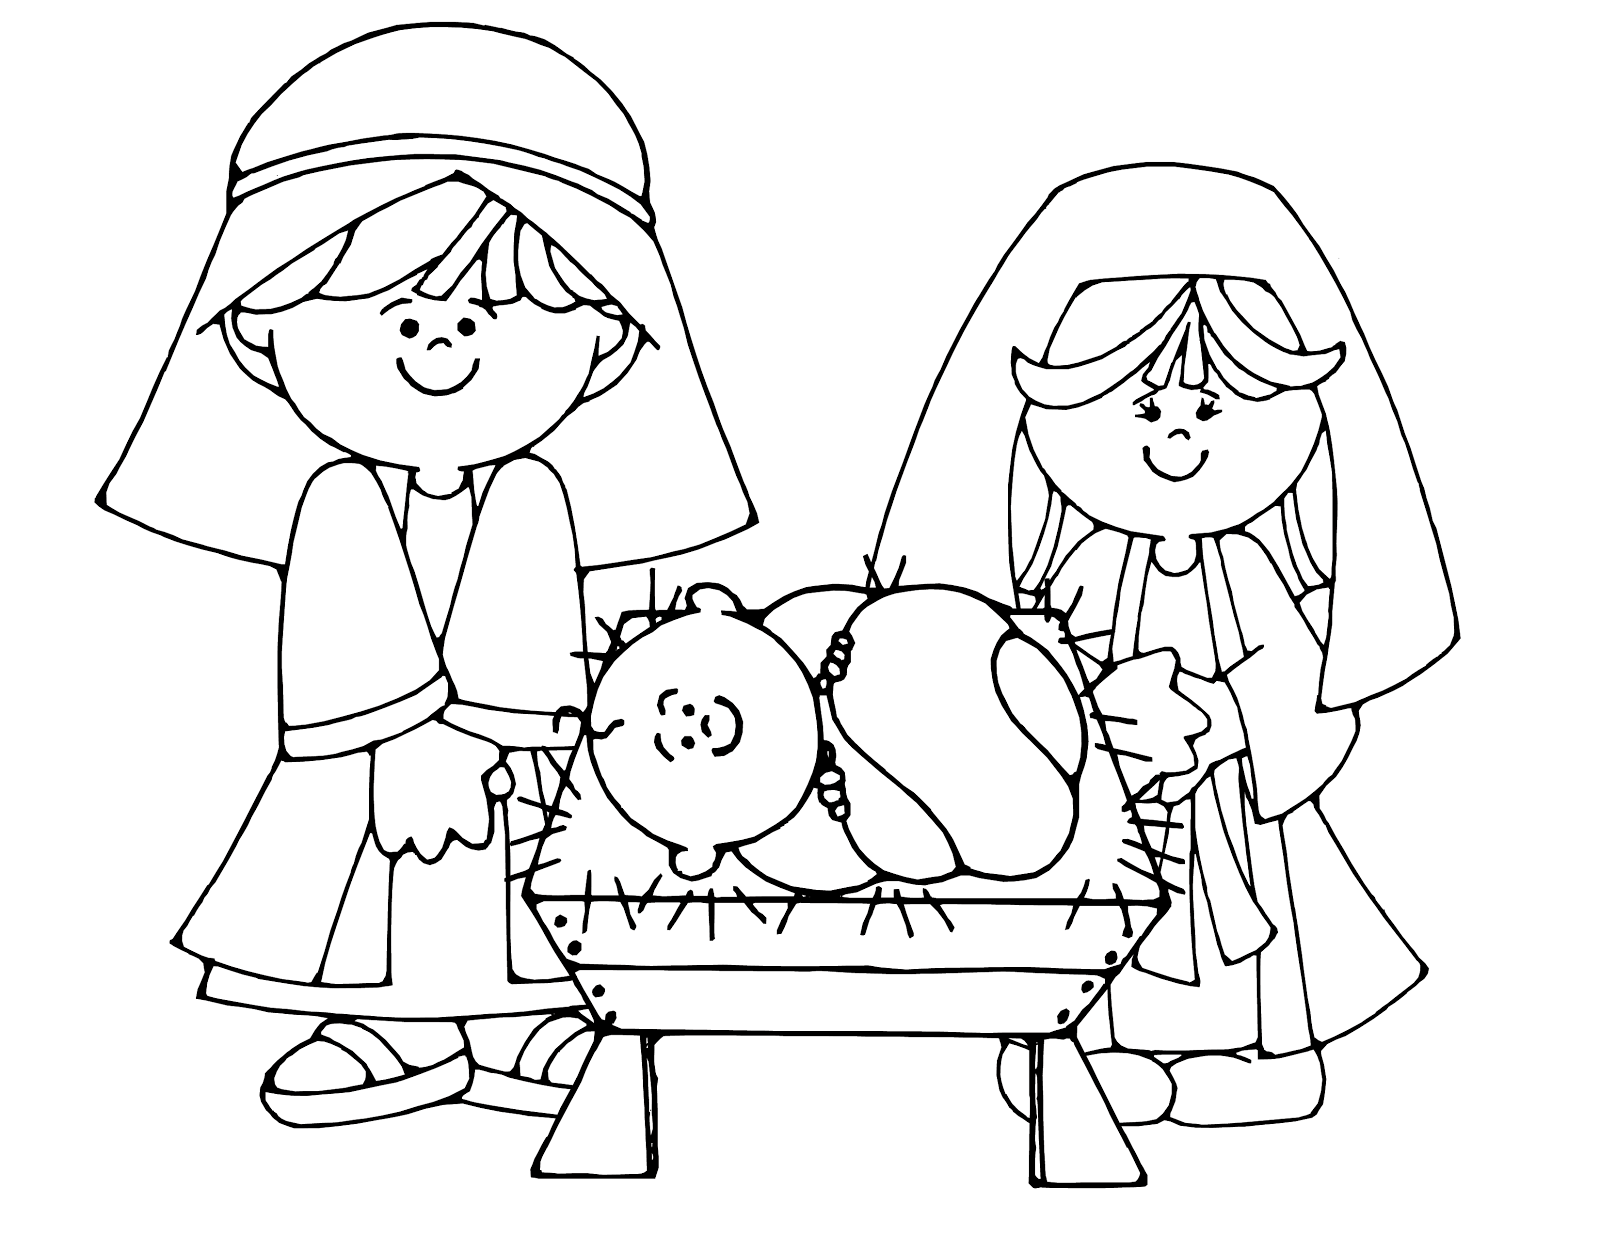 Christmas Colouring Pages Mary And Joseph With Simple Nativity Scene Page Kids Crafts Pinterest